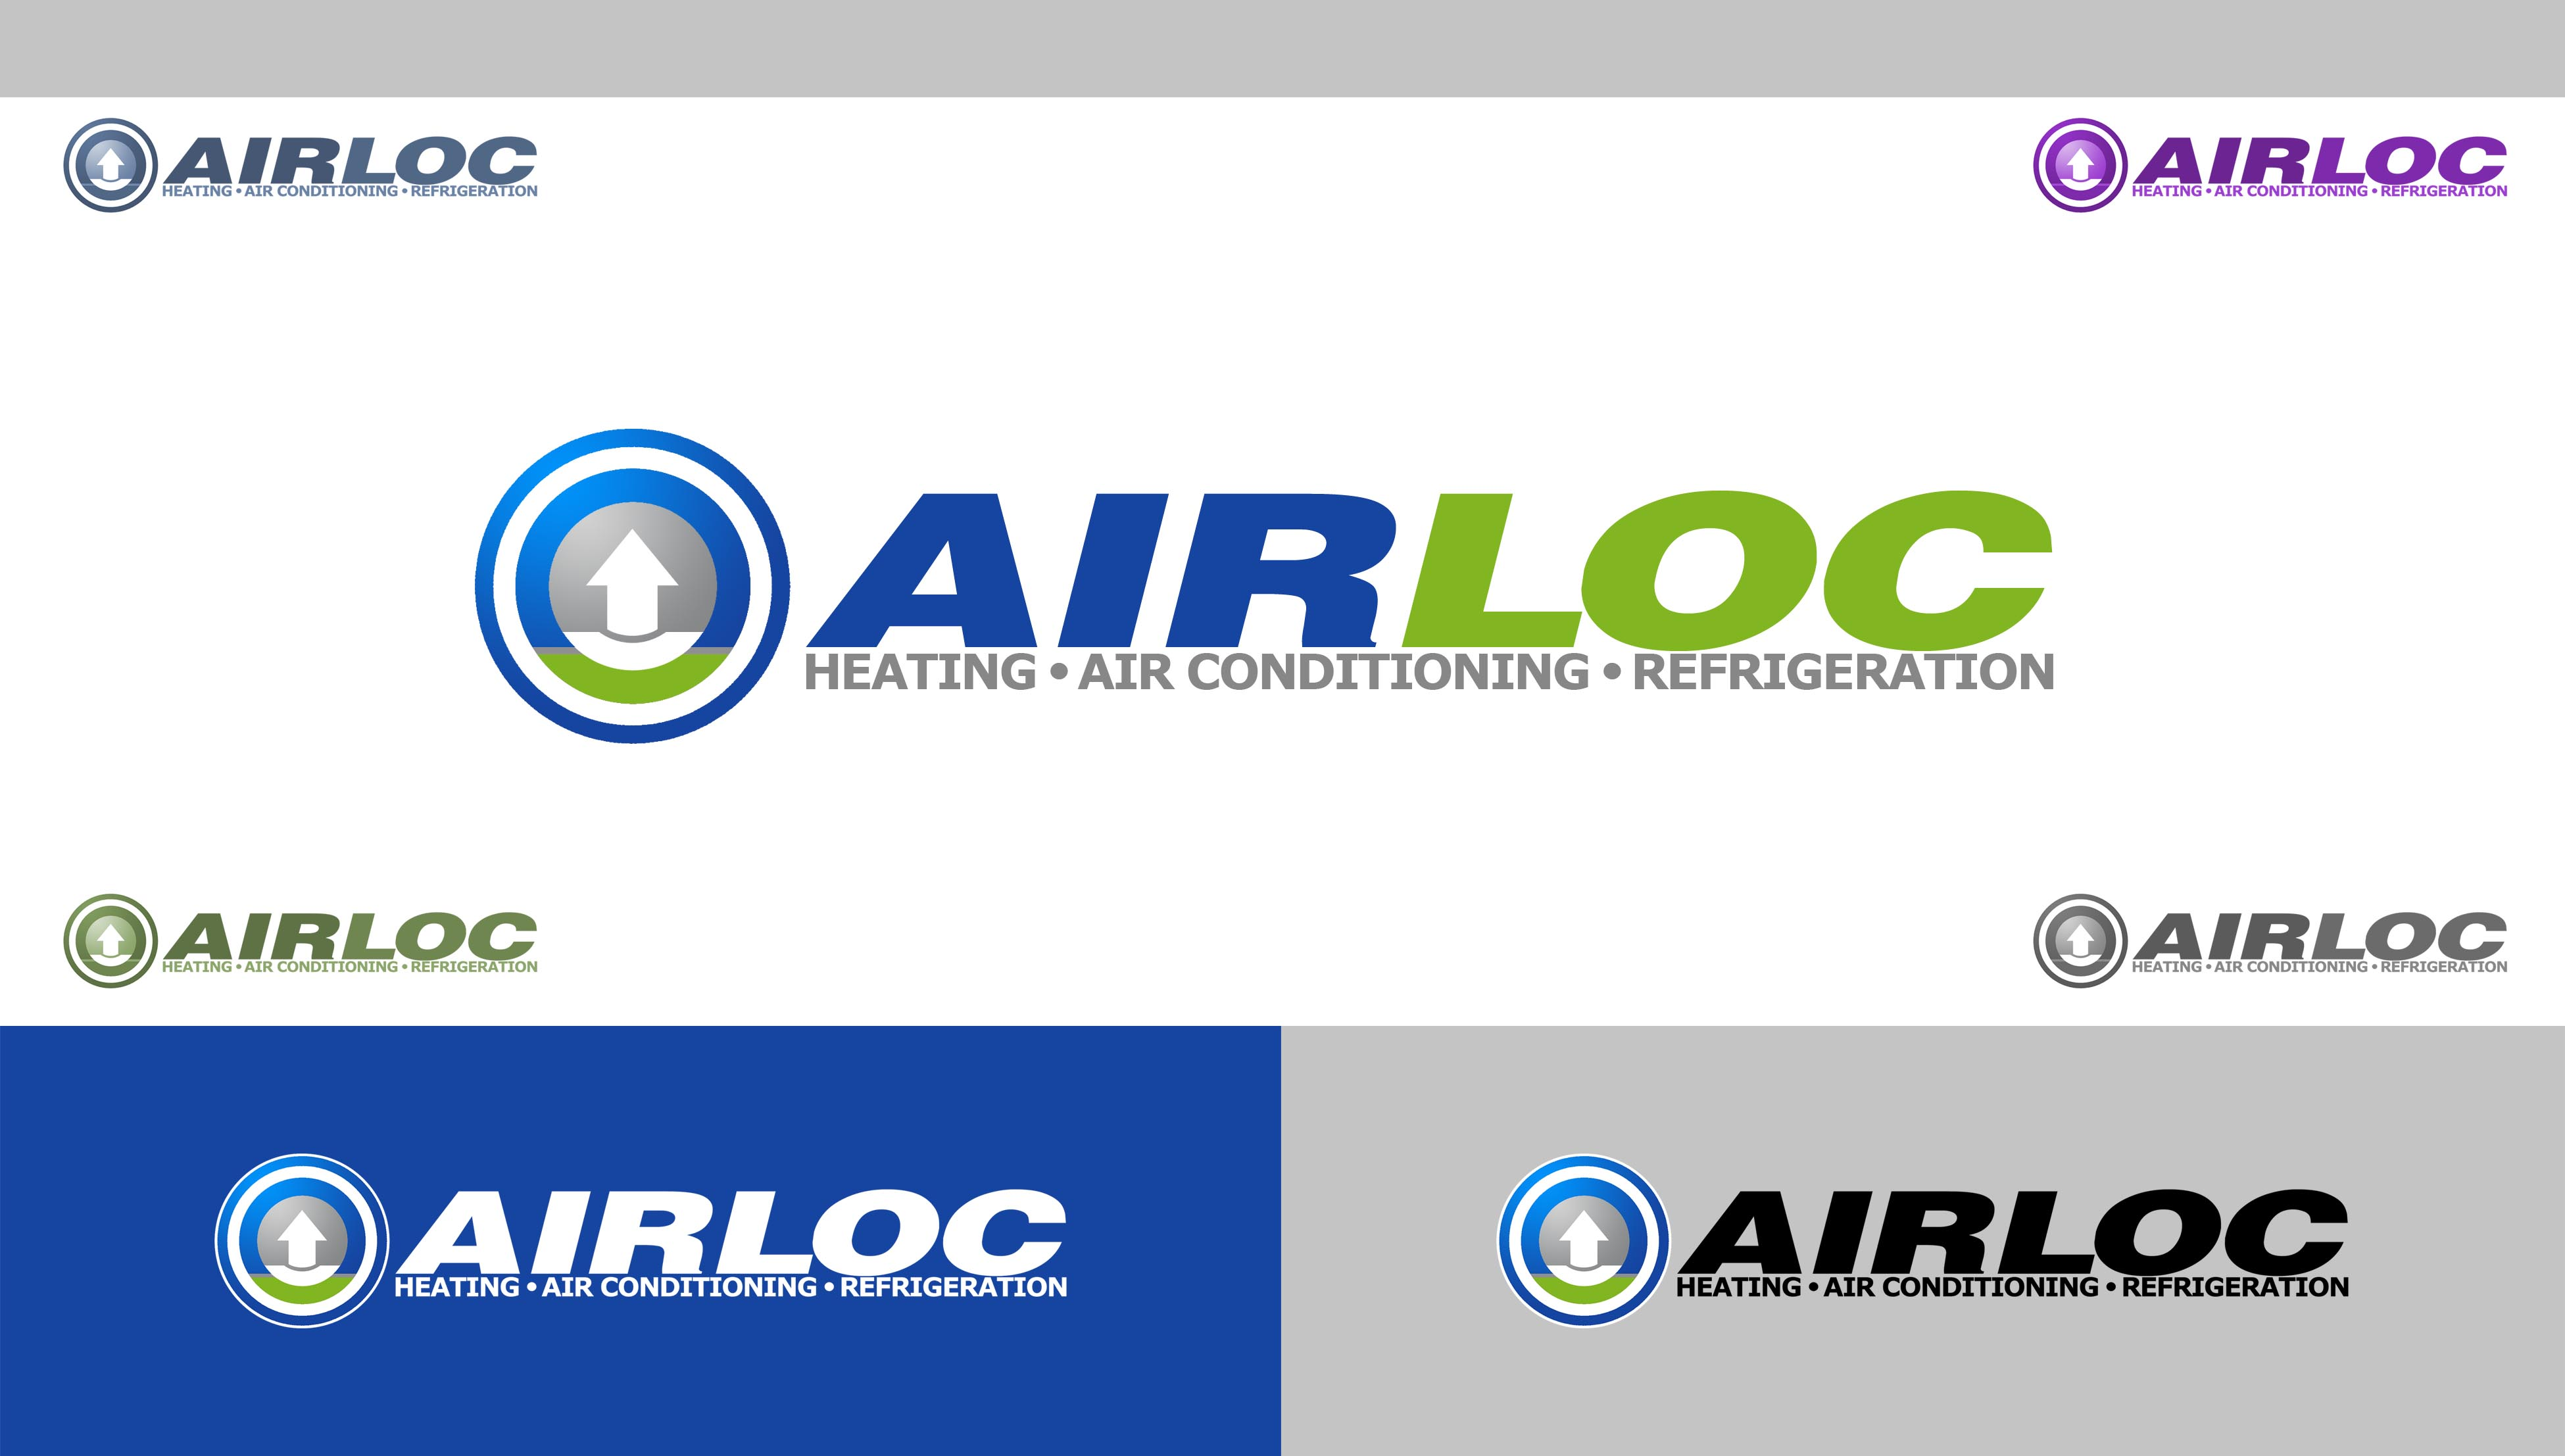 Logo Design by Cesar III Sotto - Entry No. 180 in the Logo Design Contest Airloc Logo Design.